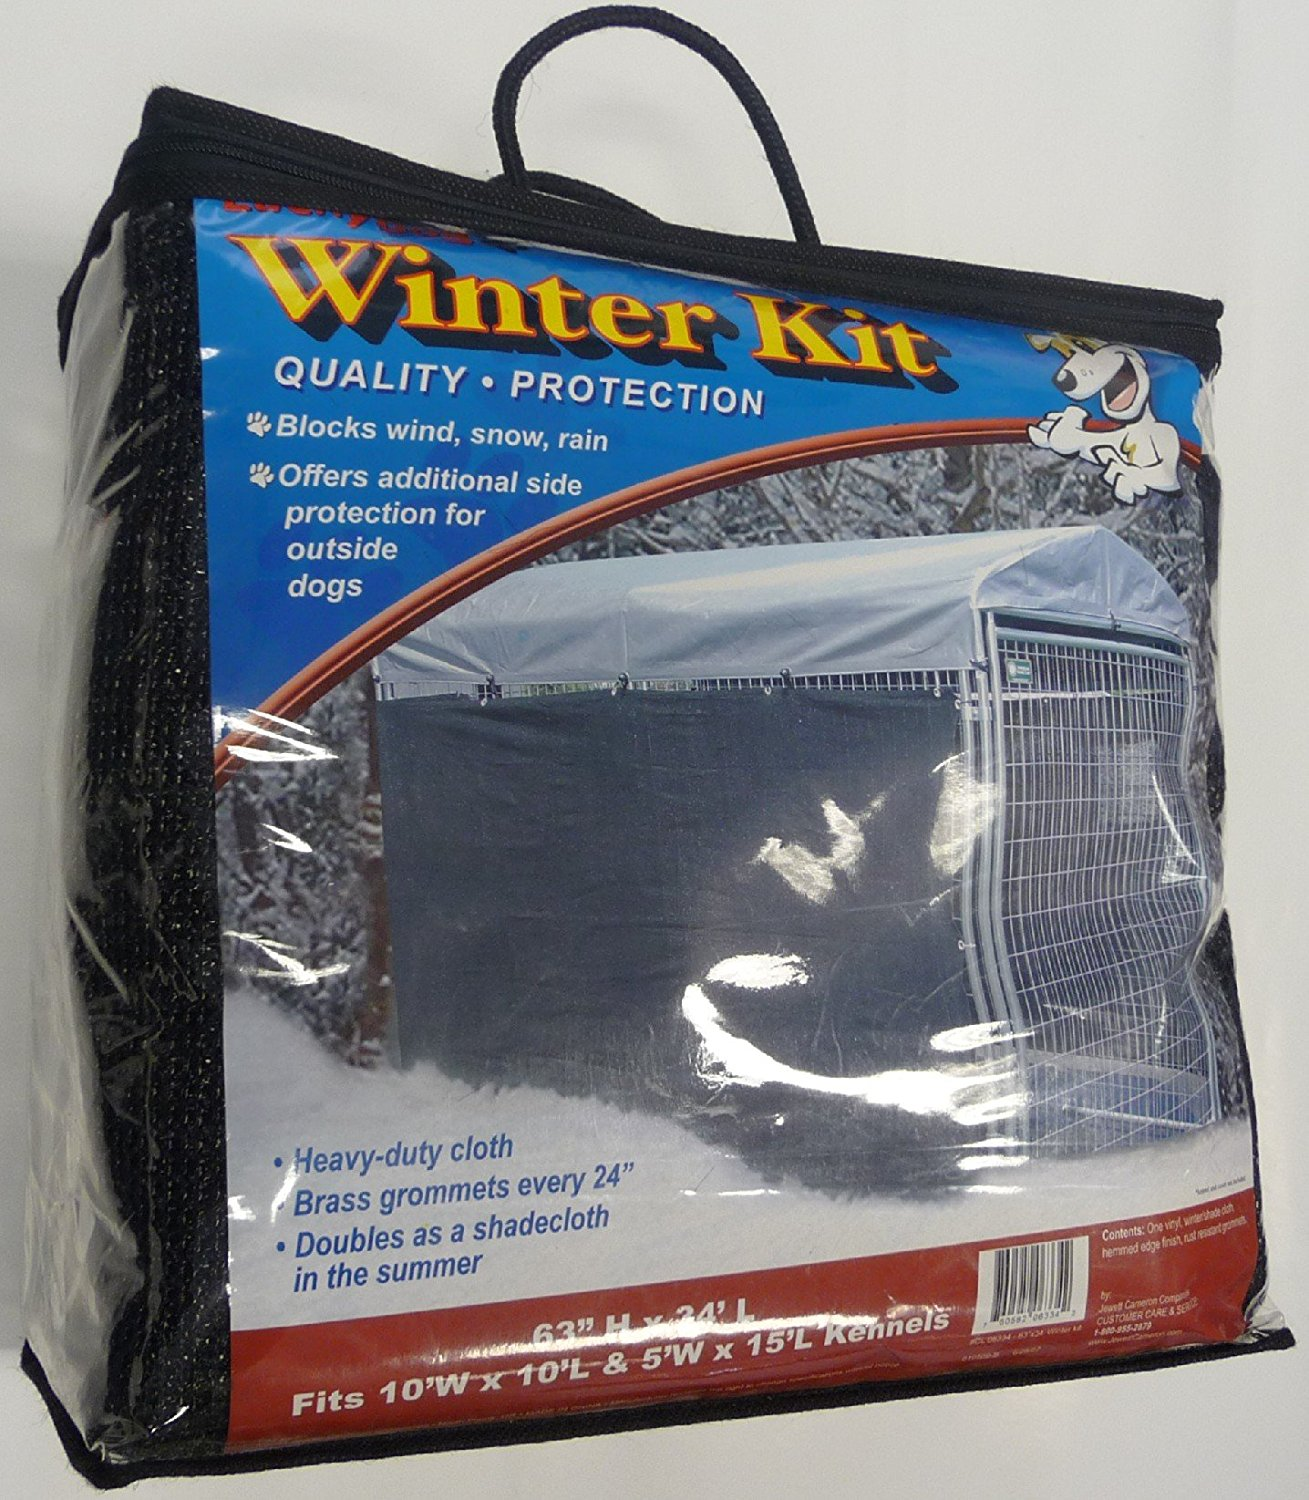 Warm & Cozy Supplies to Help Your Dog Enjoy Winter!